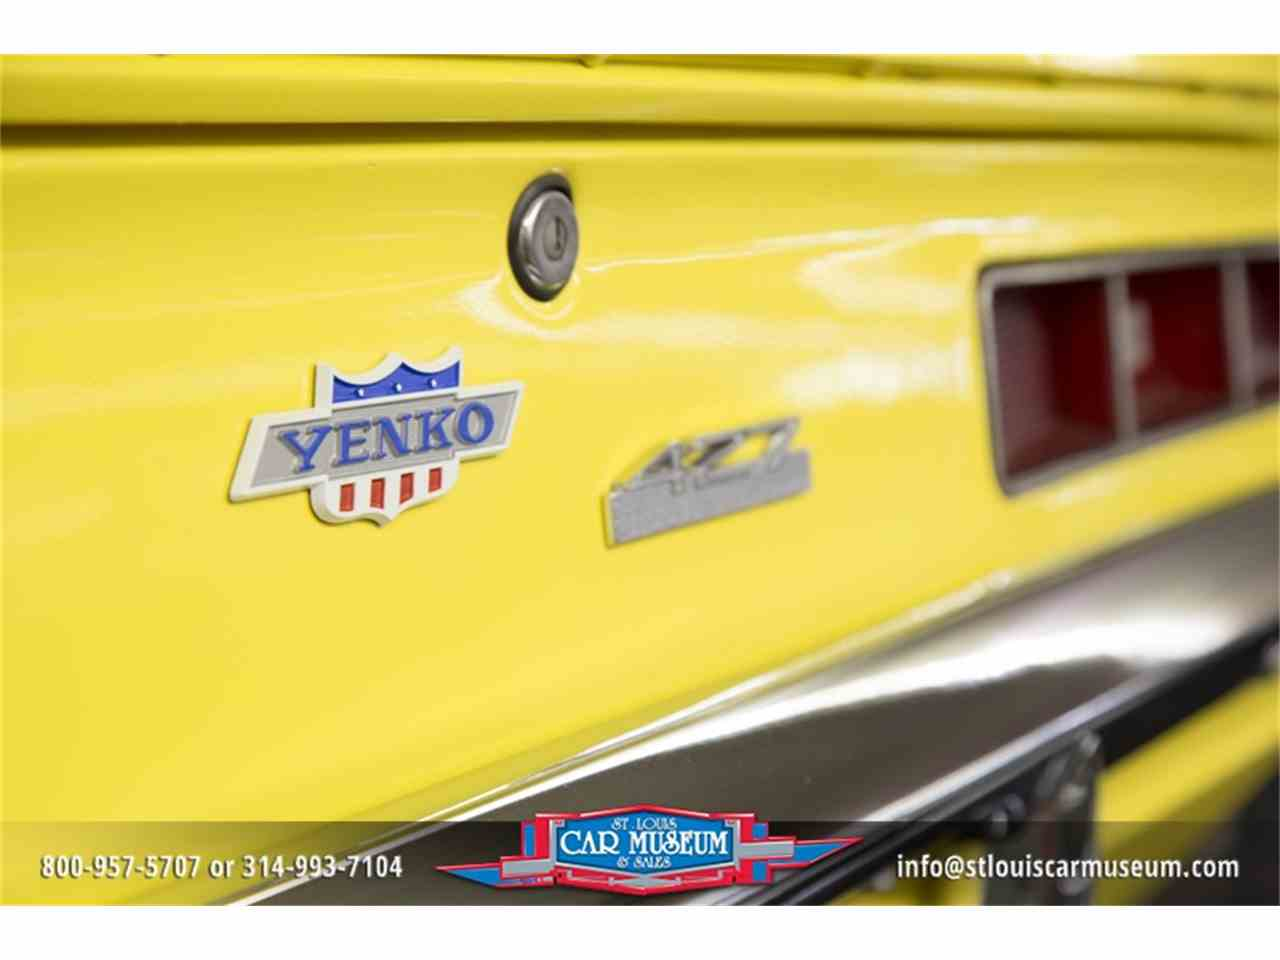 Large Picture of '69 Chevrolet Camaro Yenko located in St. Louis Missouri - $39,900.00 - LTPE